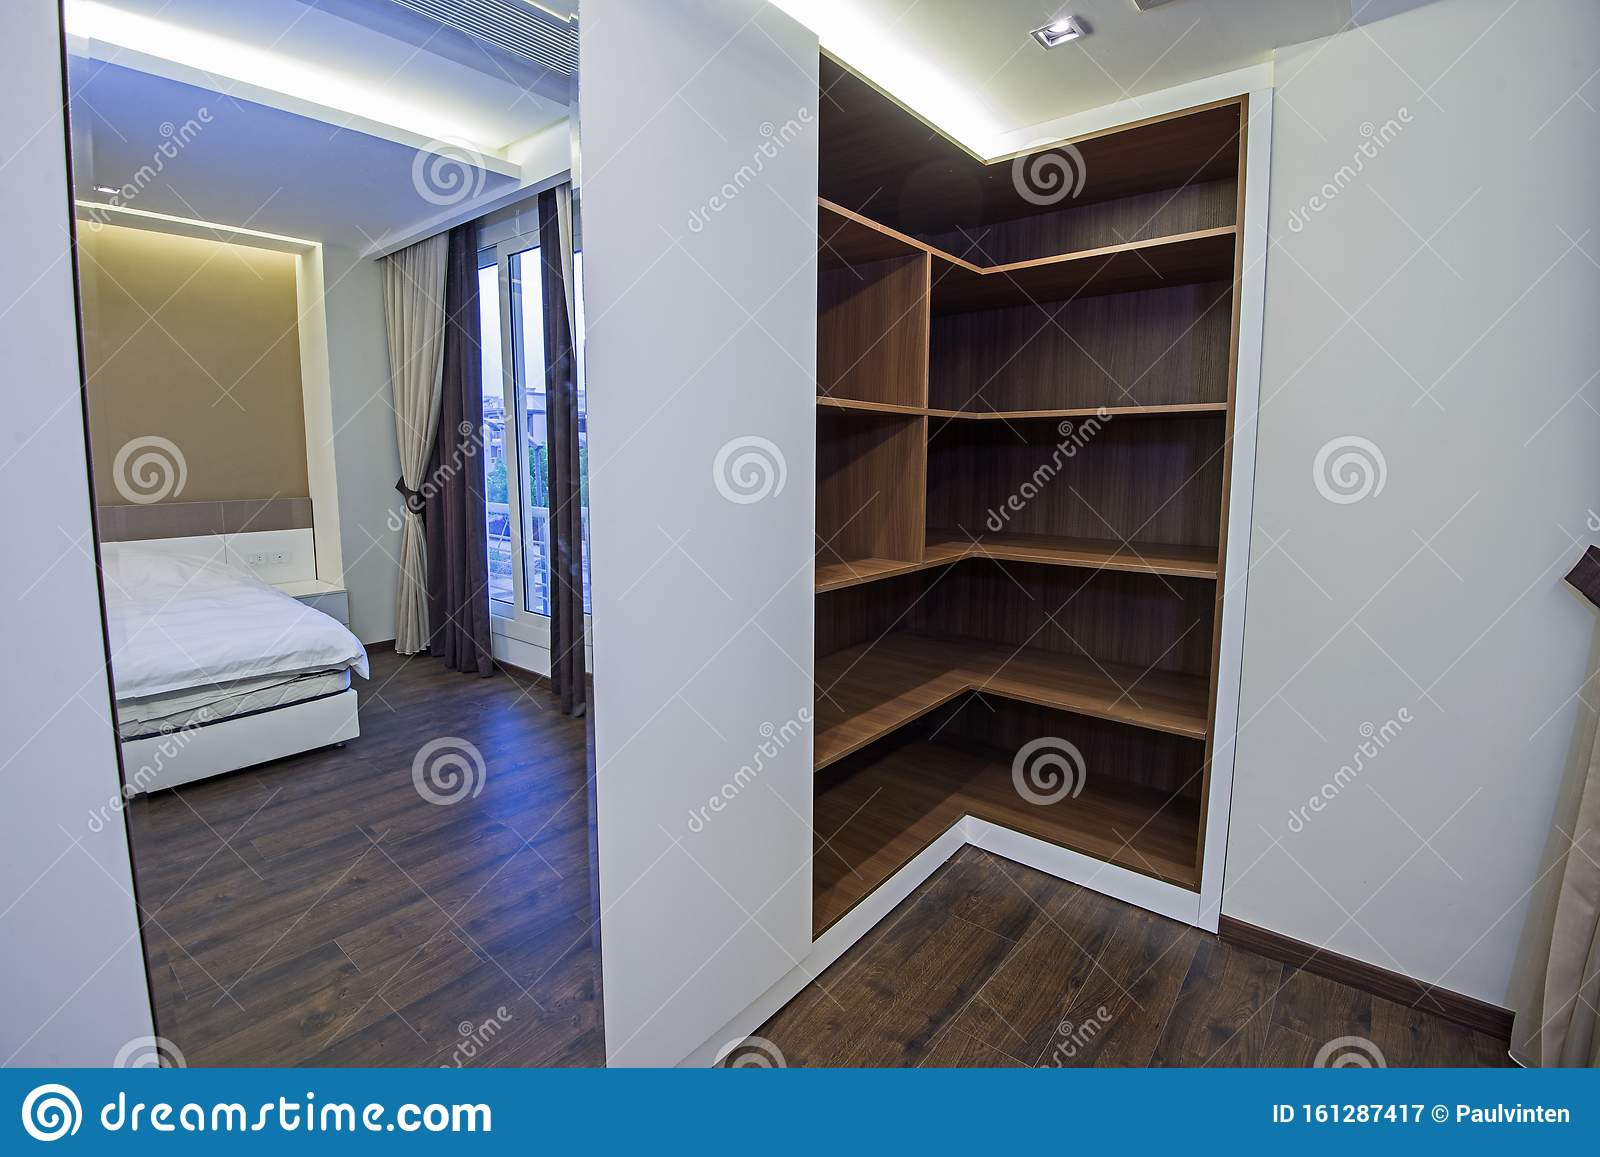 Interior Design Of Bedroom Closet In House Stock Image Image Of Cupboard Walk 161287417